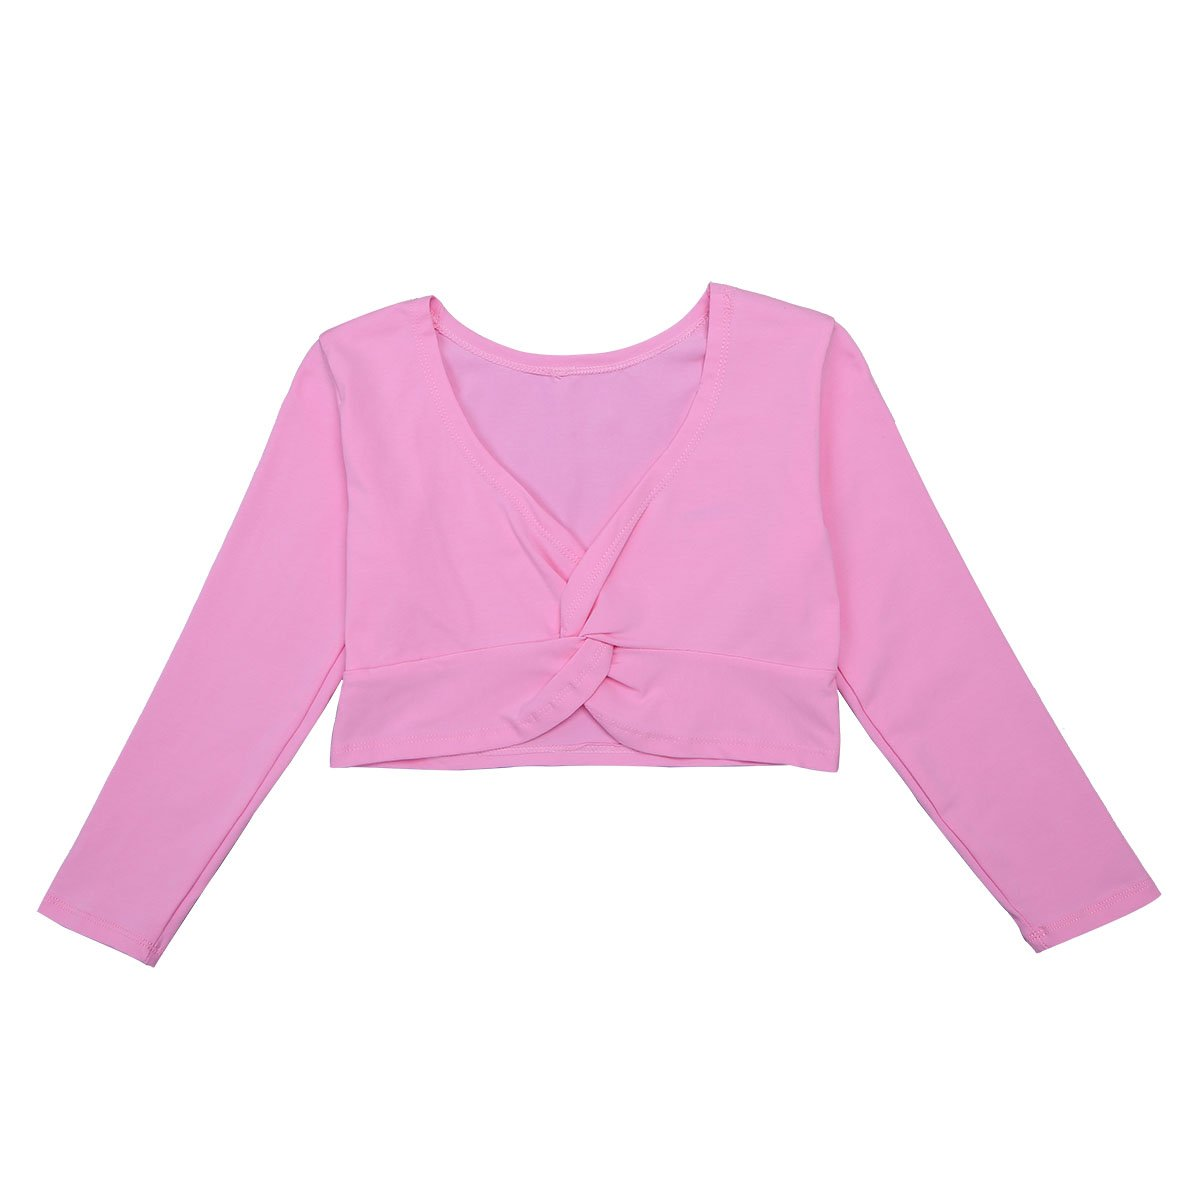 iEFiEL Girls Front Twist Knot Long Sleeve Ballerina Dance Cotton Wrap Top Pink 4-5 by iEFiEL